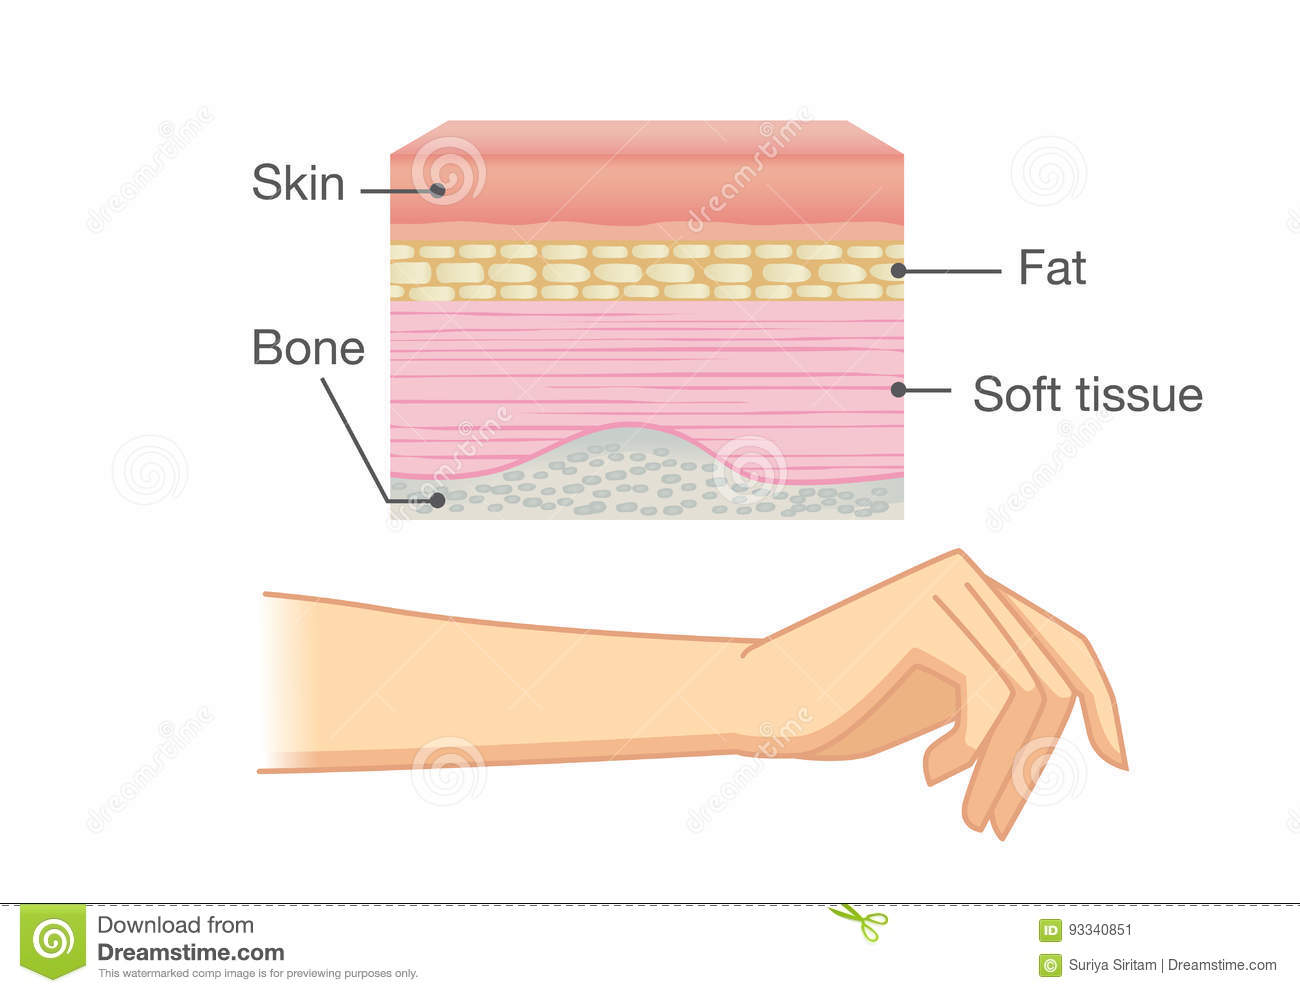 The anatomy of the skin